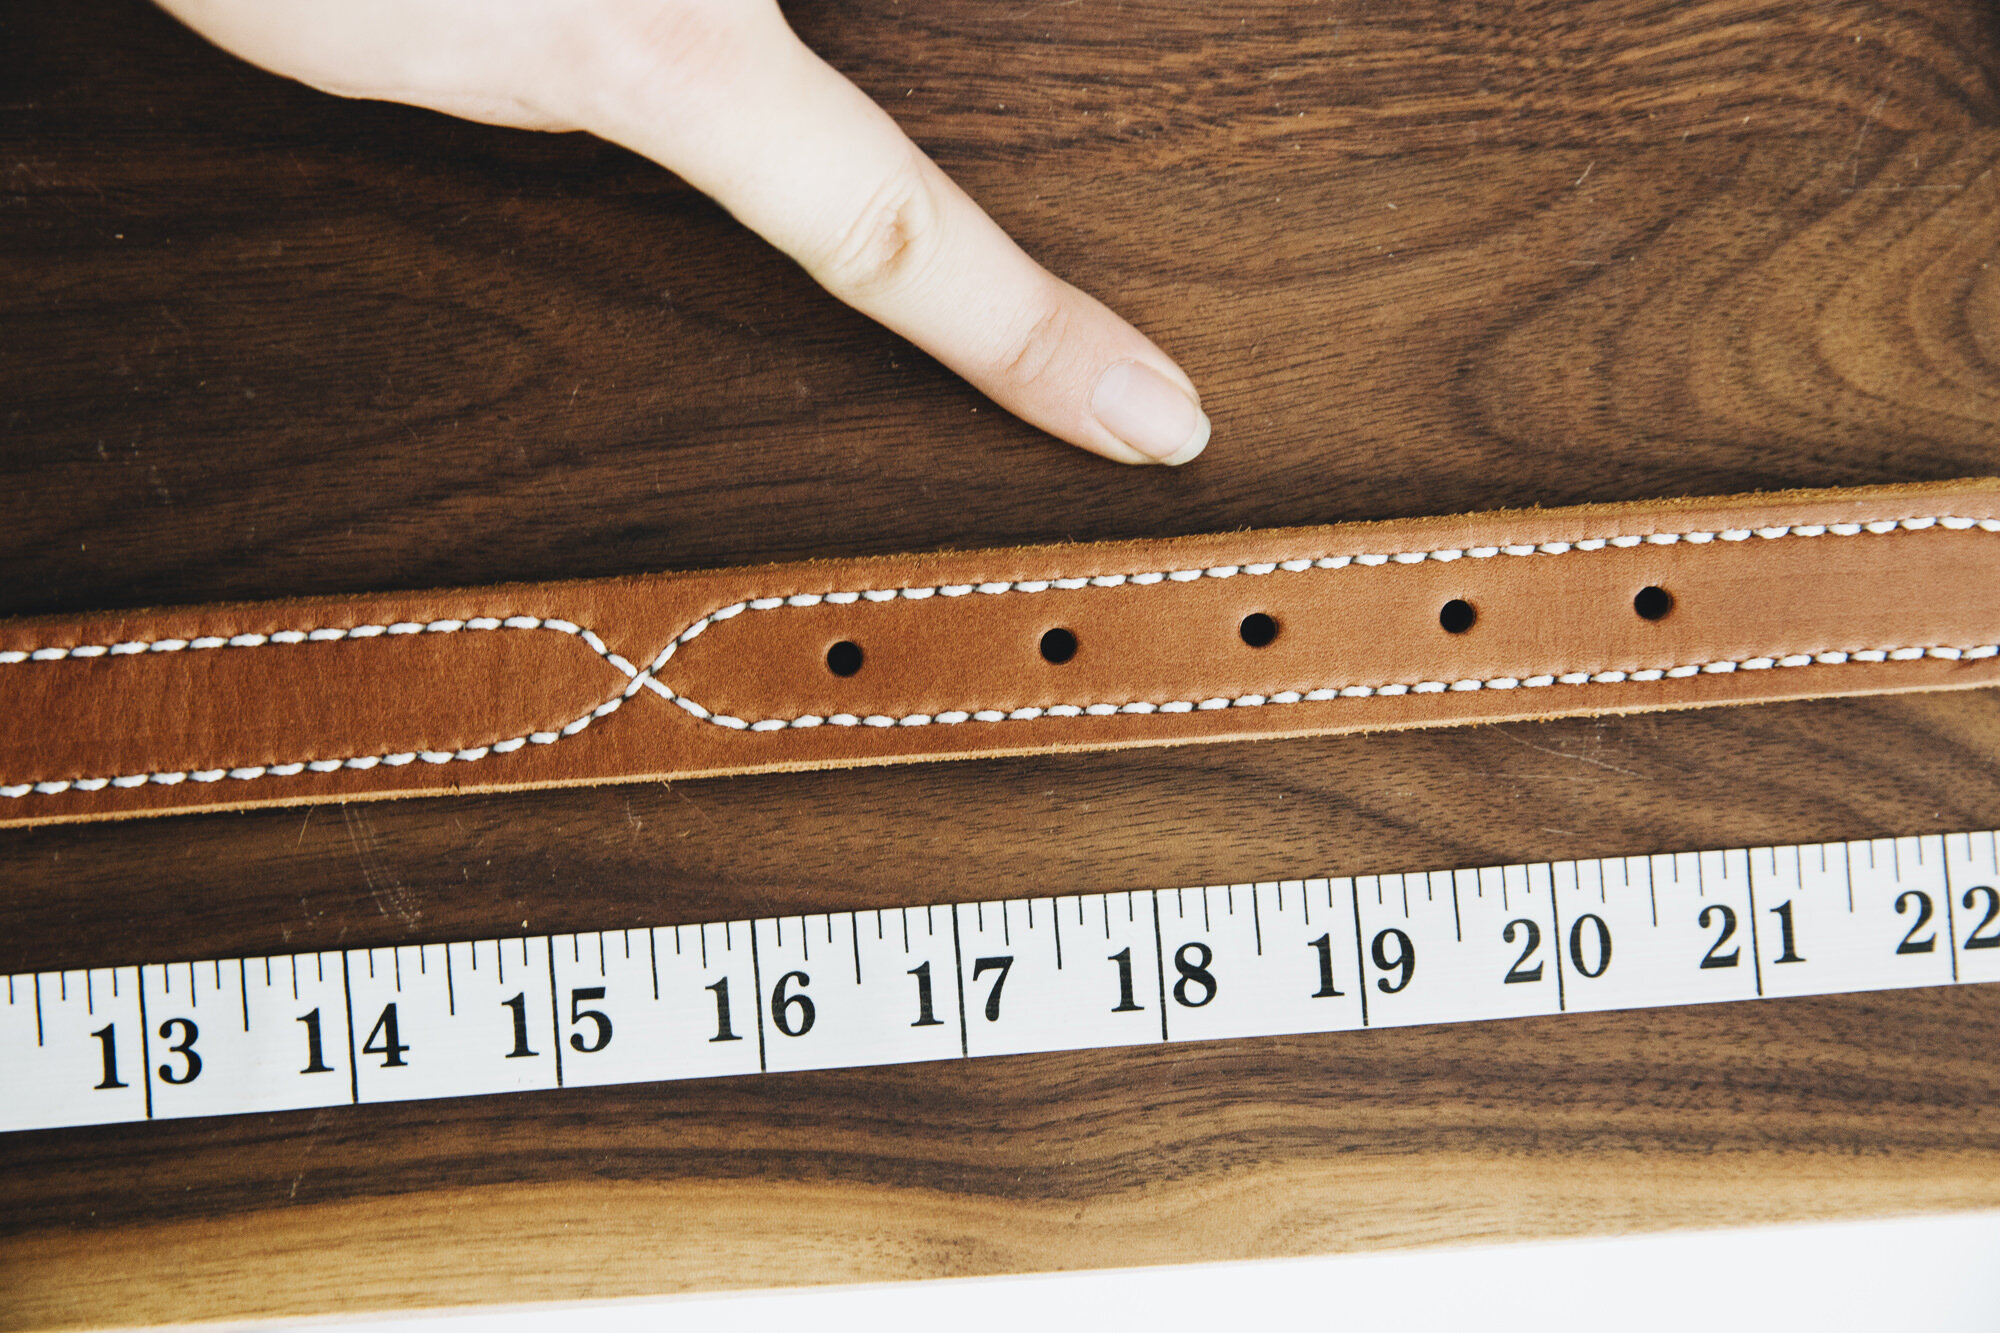 How to measure a Barbered Leather belt